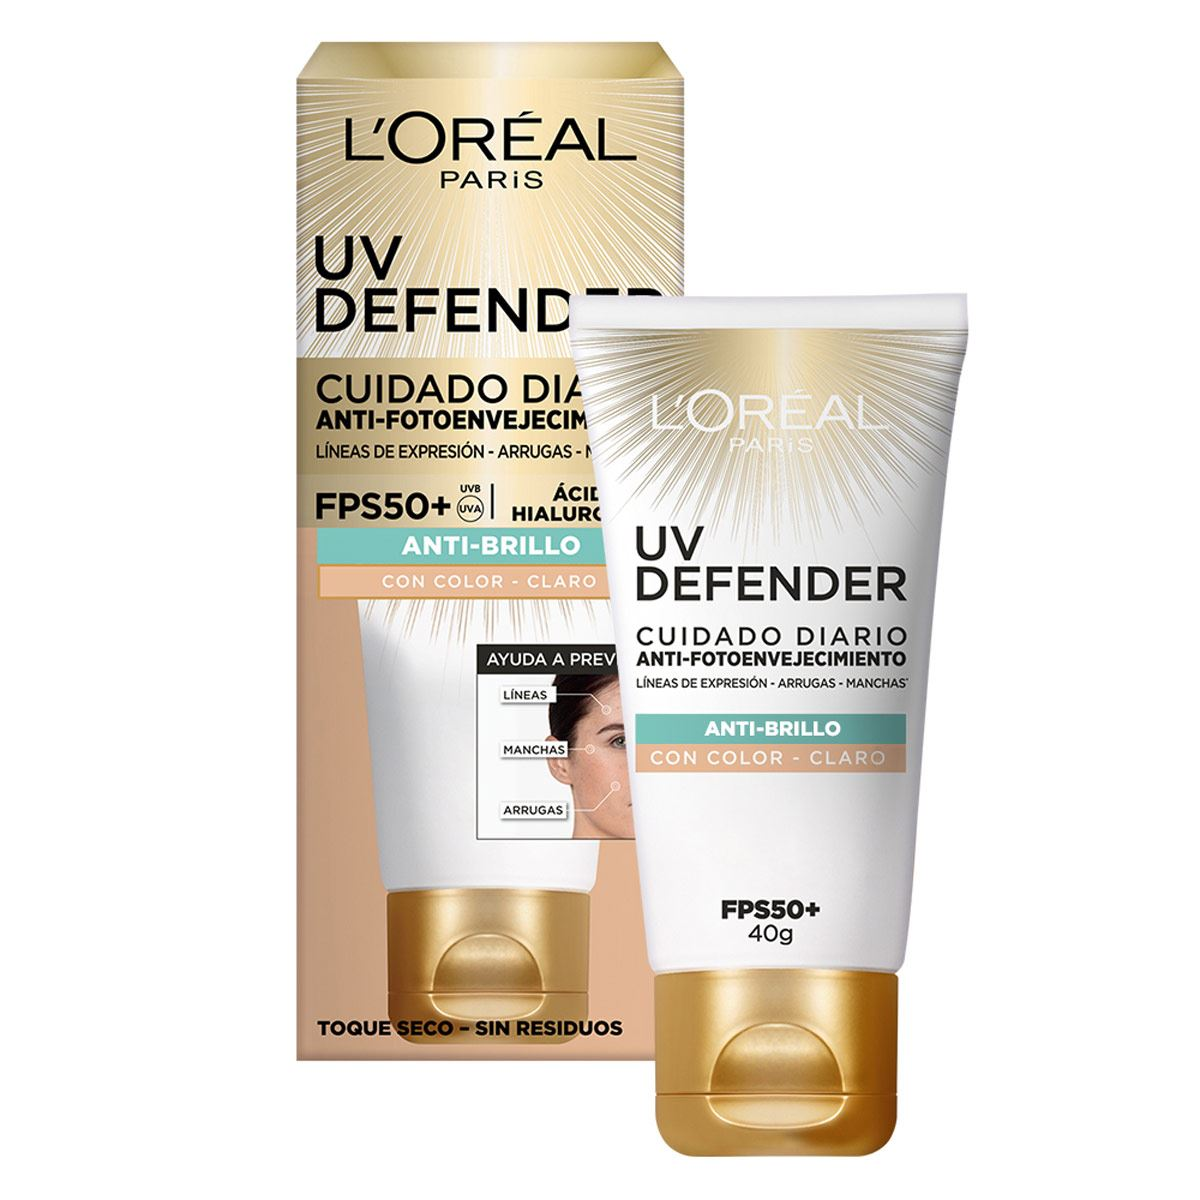 Cuidado diario anti-fotoenvejecimiento FPS50+ L'Oréal Paris  UV Defender anti-brillo tono claro, 40ml